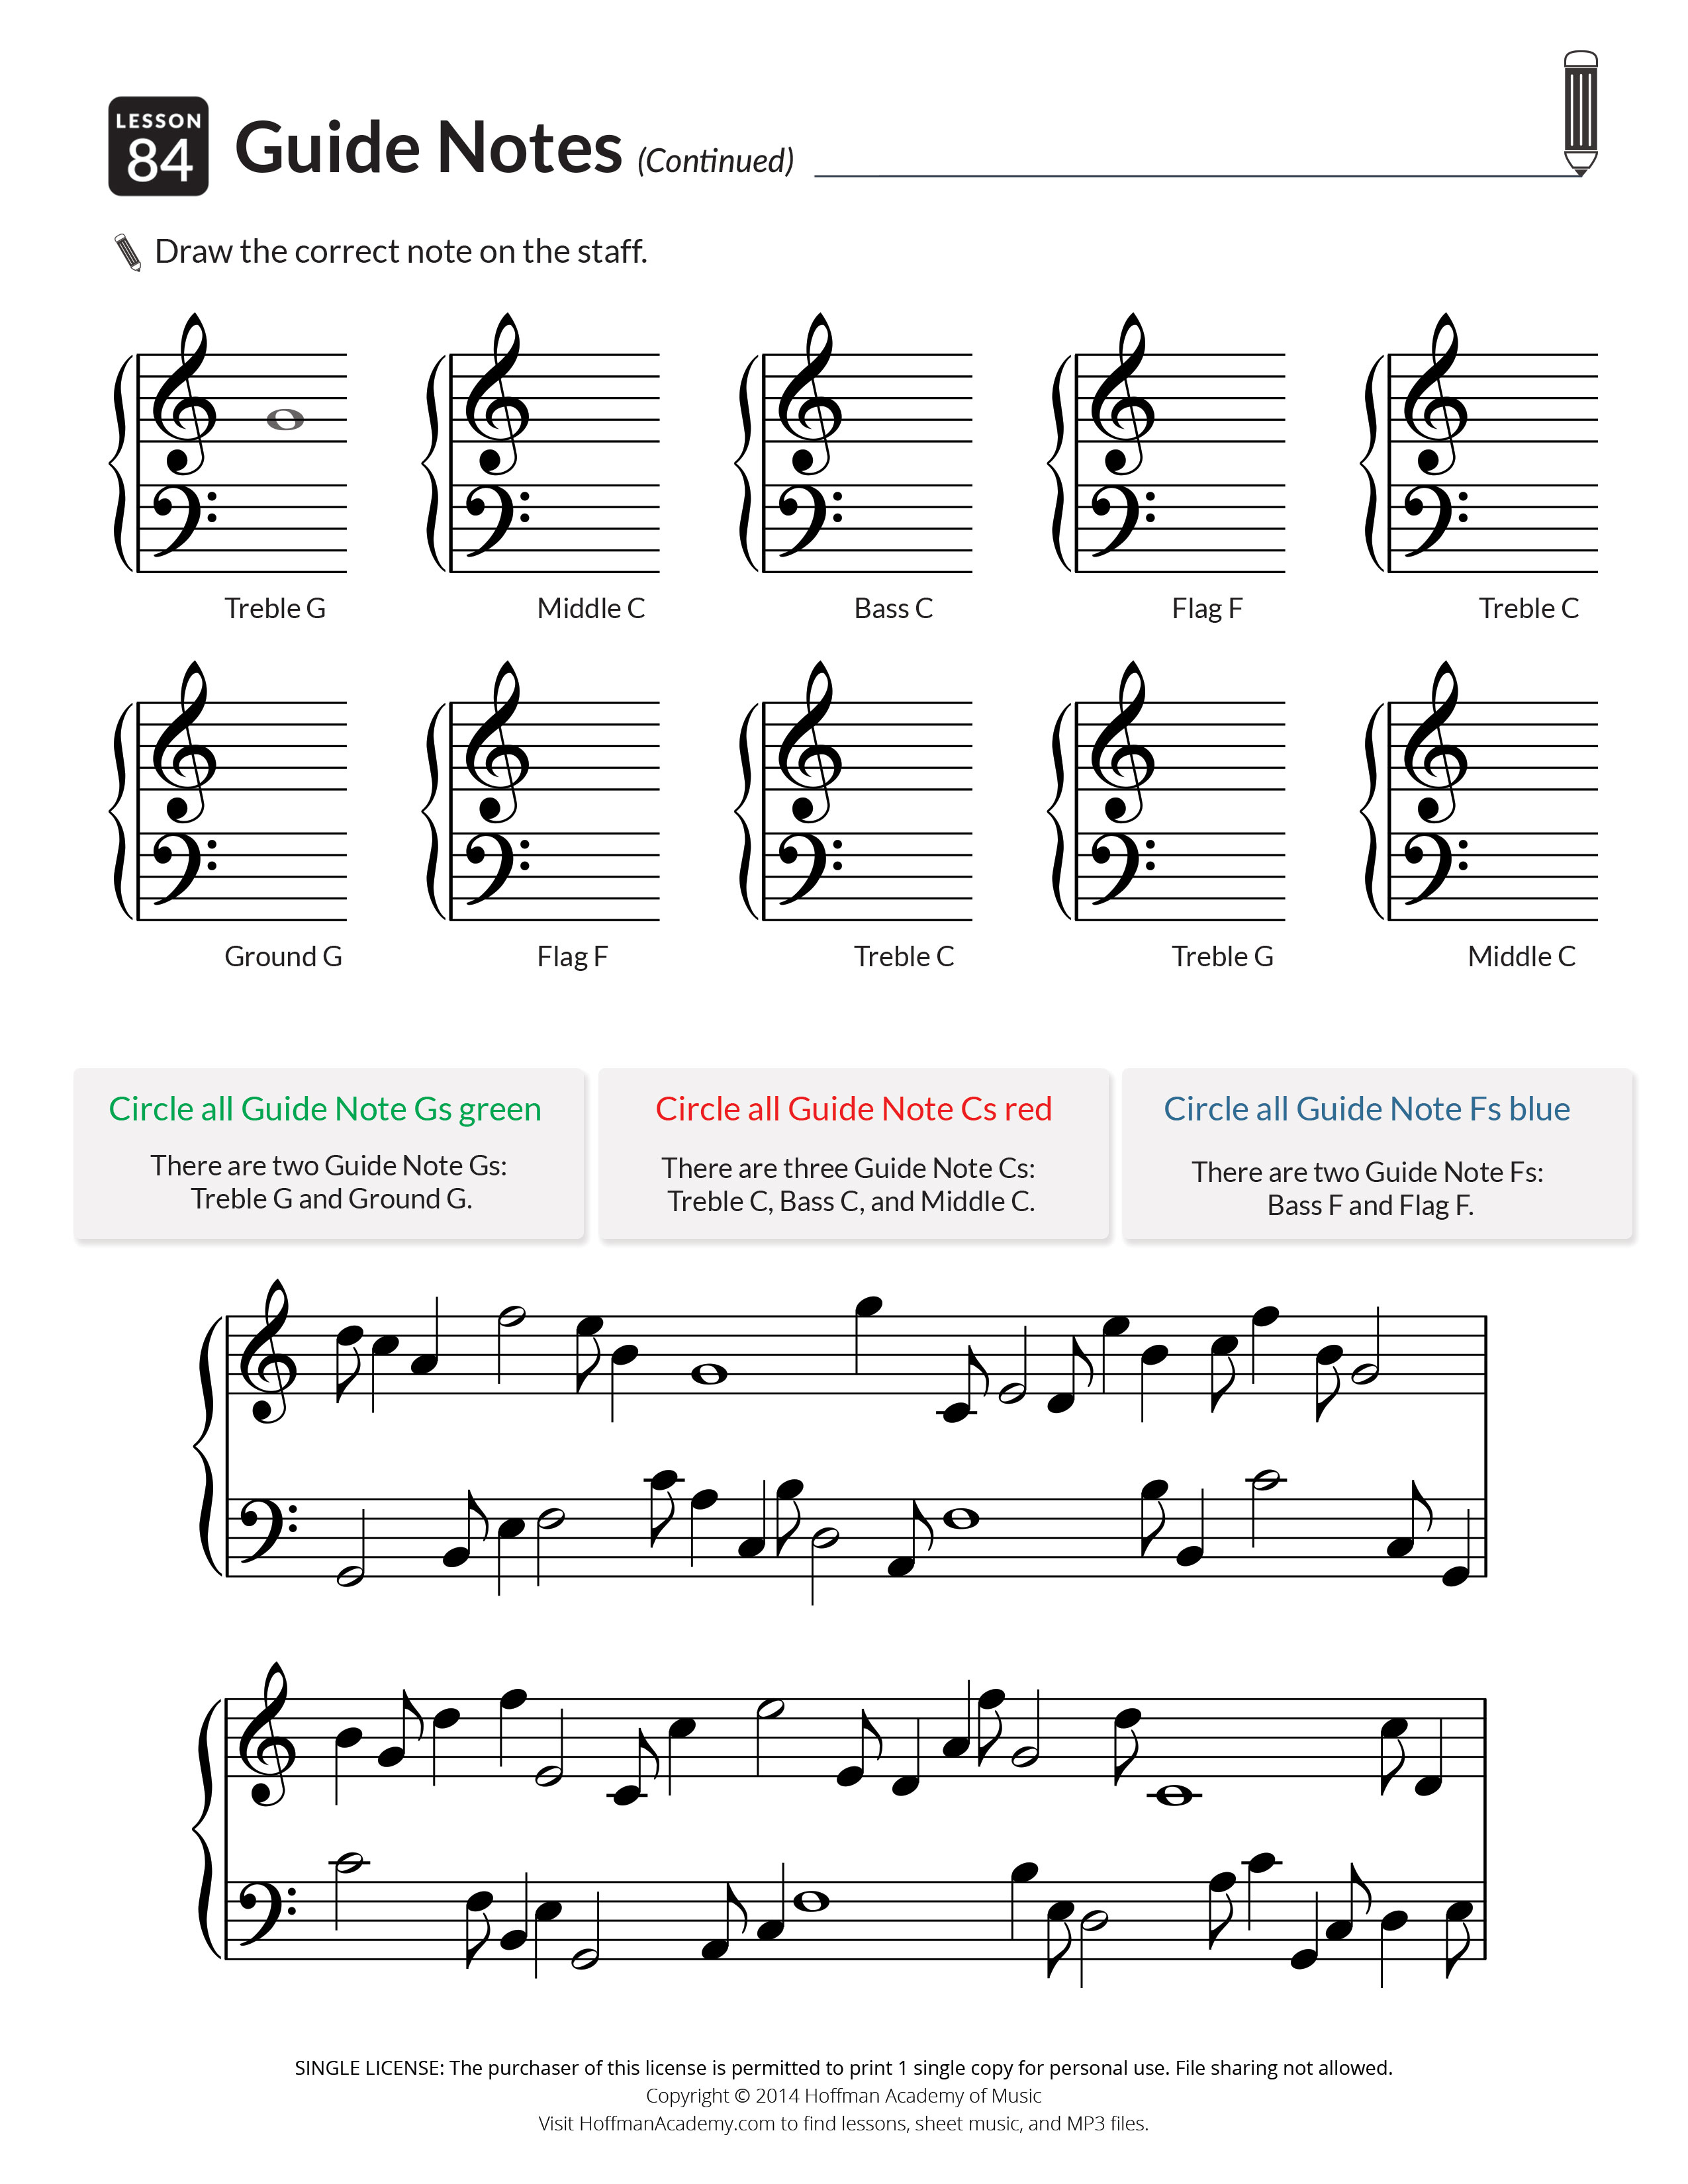 Printables & Audio For Piano Units 1-5: Lessons 1-100 - Hoffman Academy - Beginner Piano Worksheets Printable Free